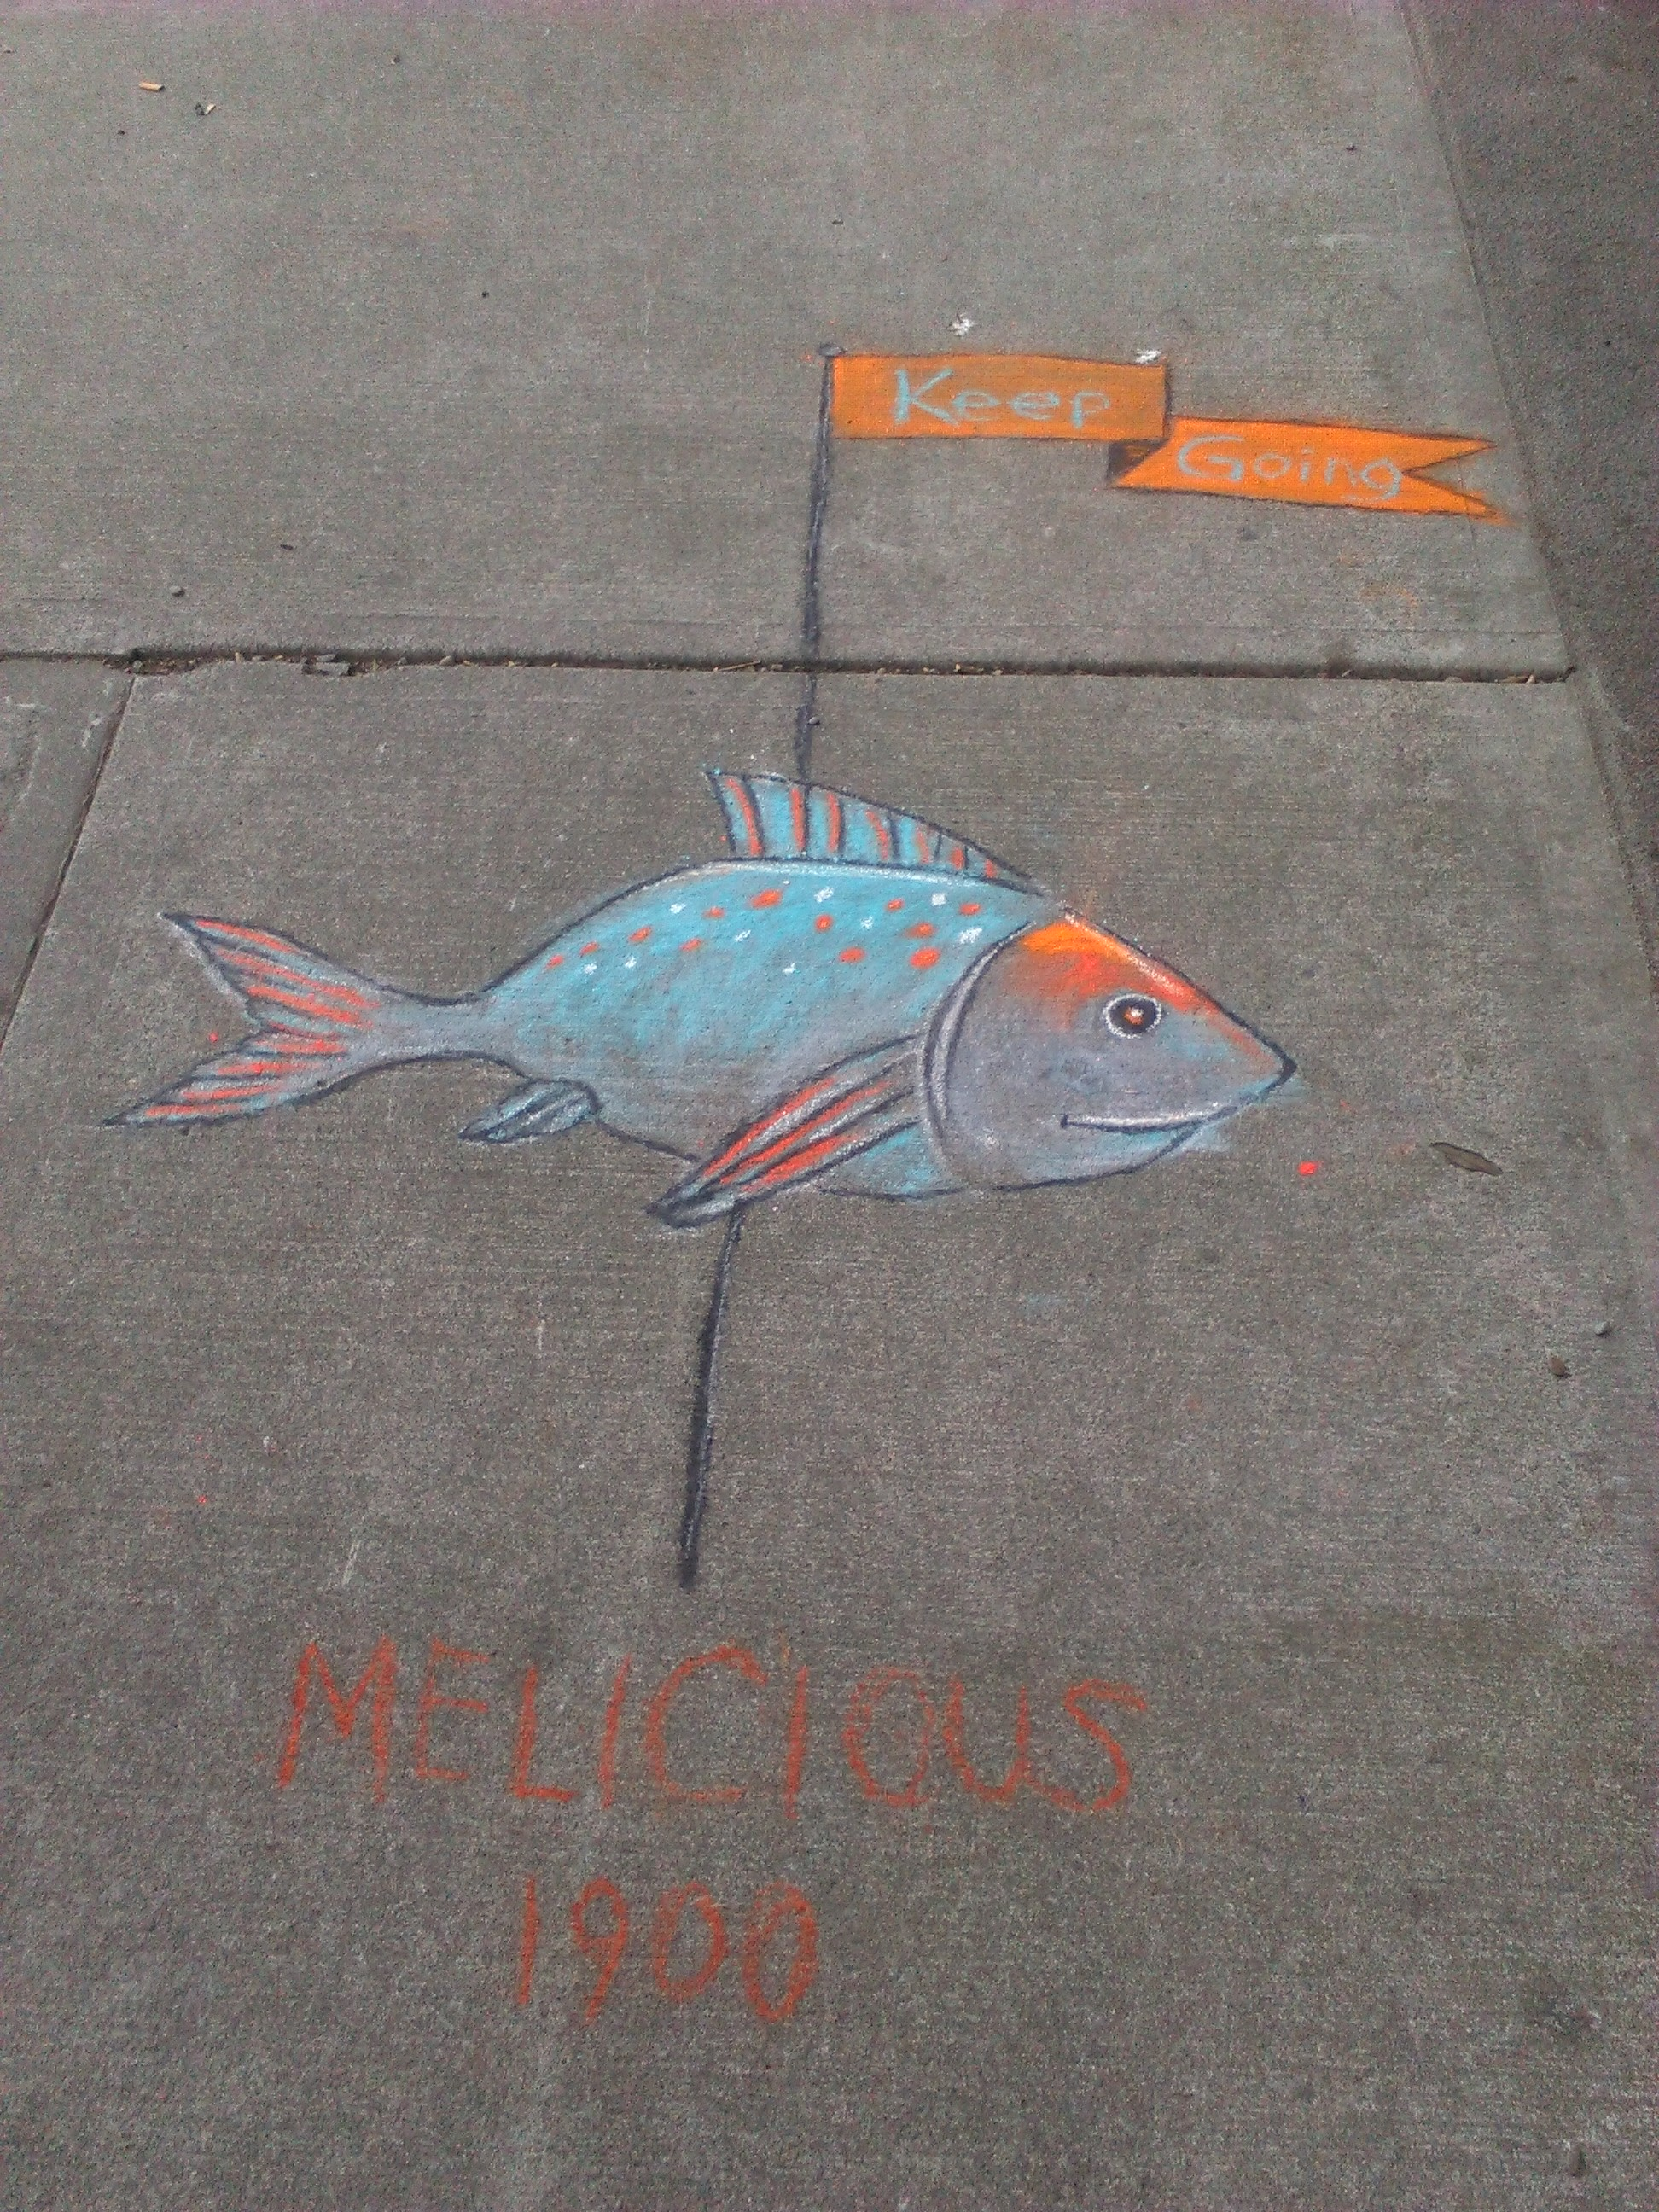 The 2nd fish drawing to encourage you to keep going! Near the South Side of Burnside and 5th.